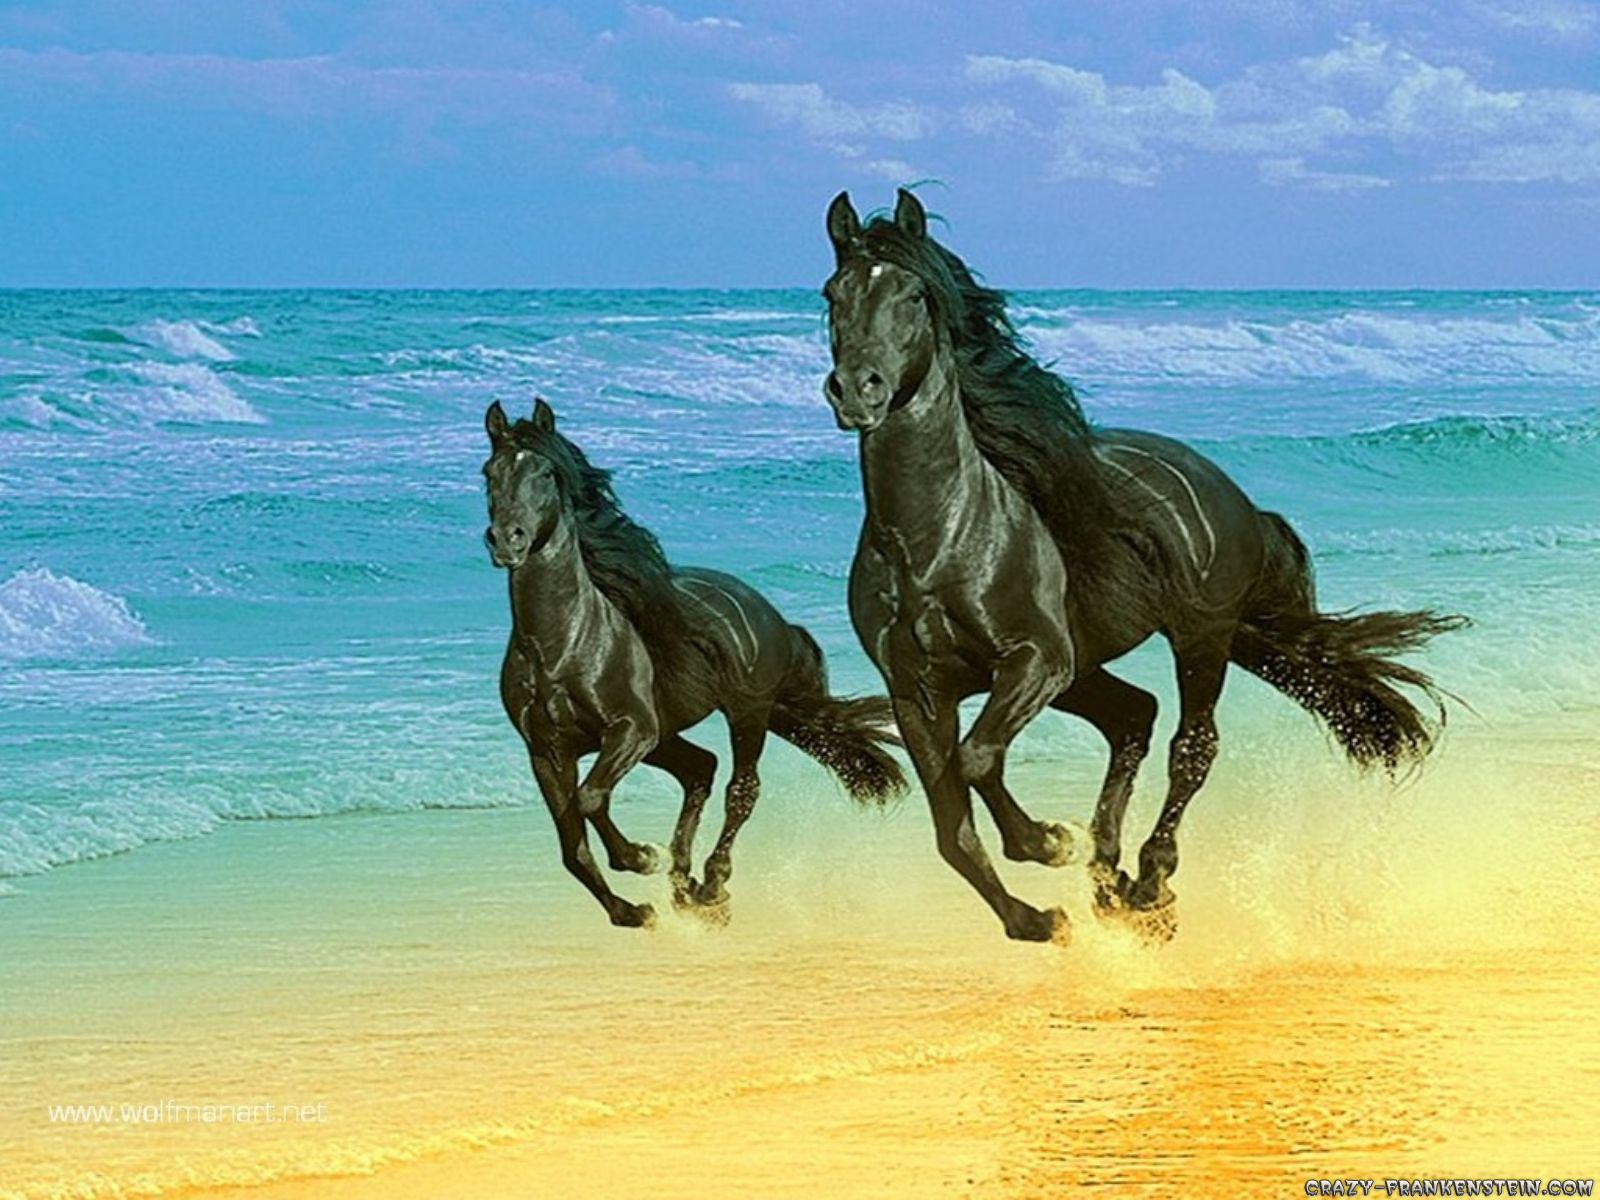 Horses images more horse wallpapers hd wallpaper and background